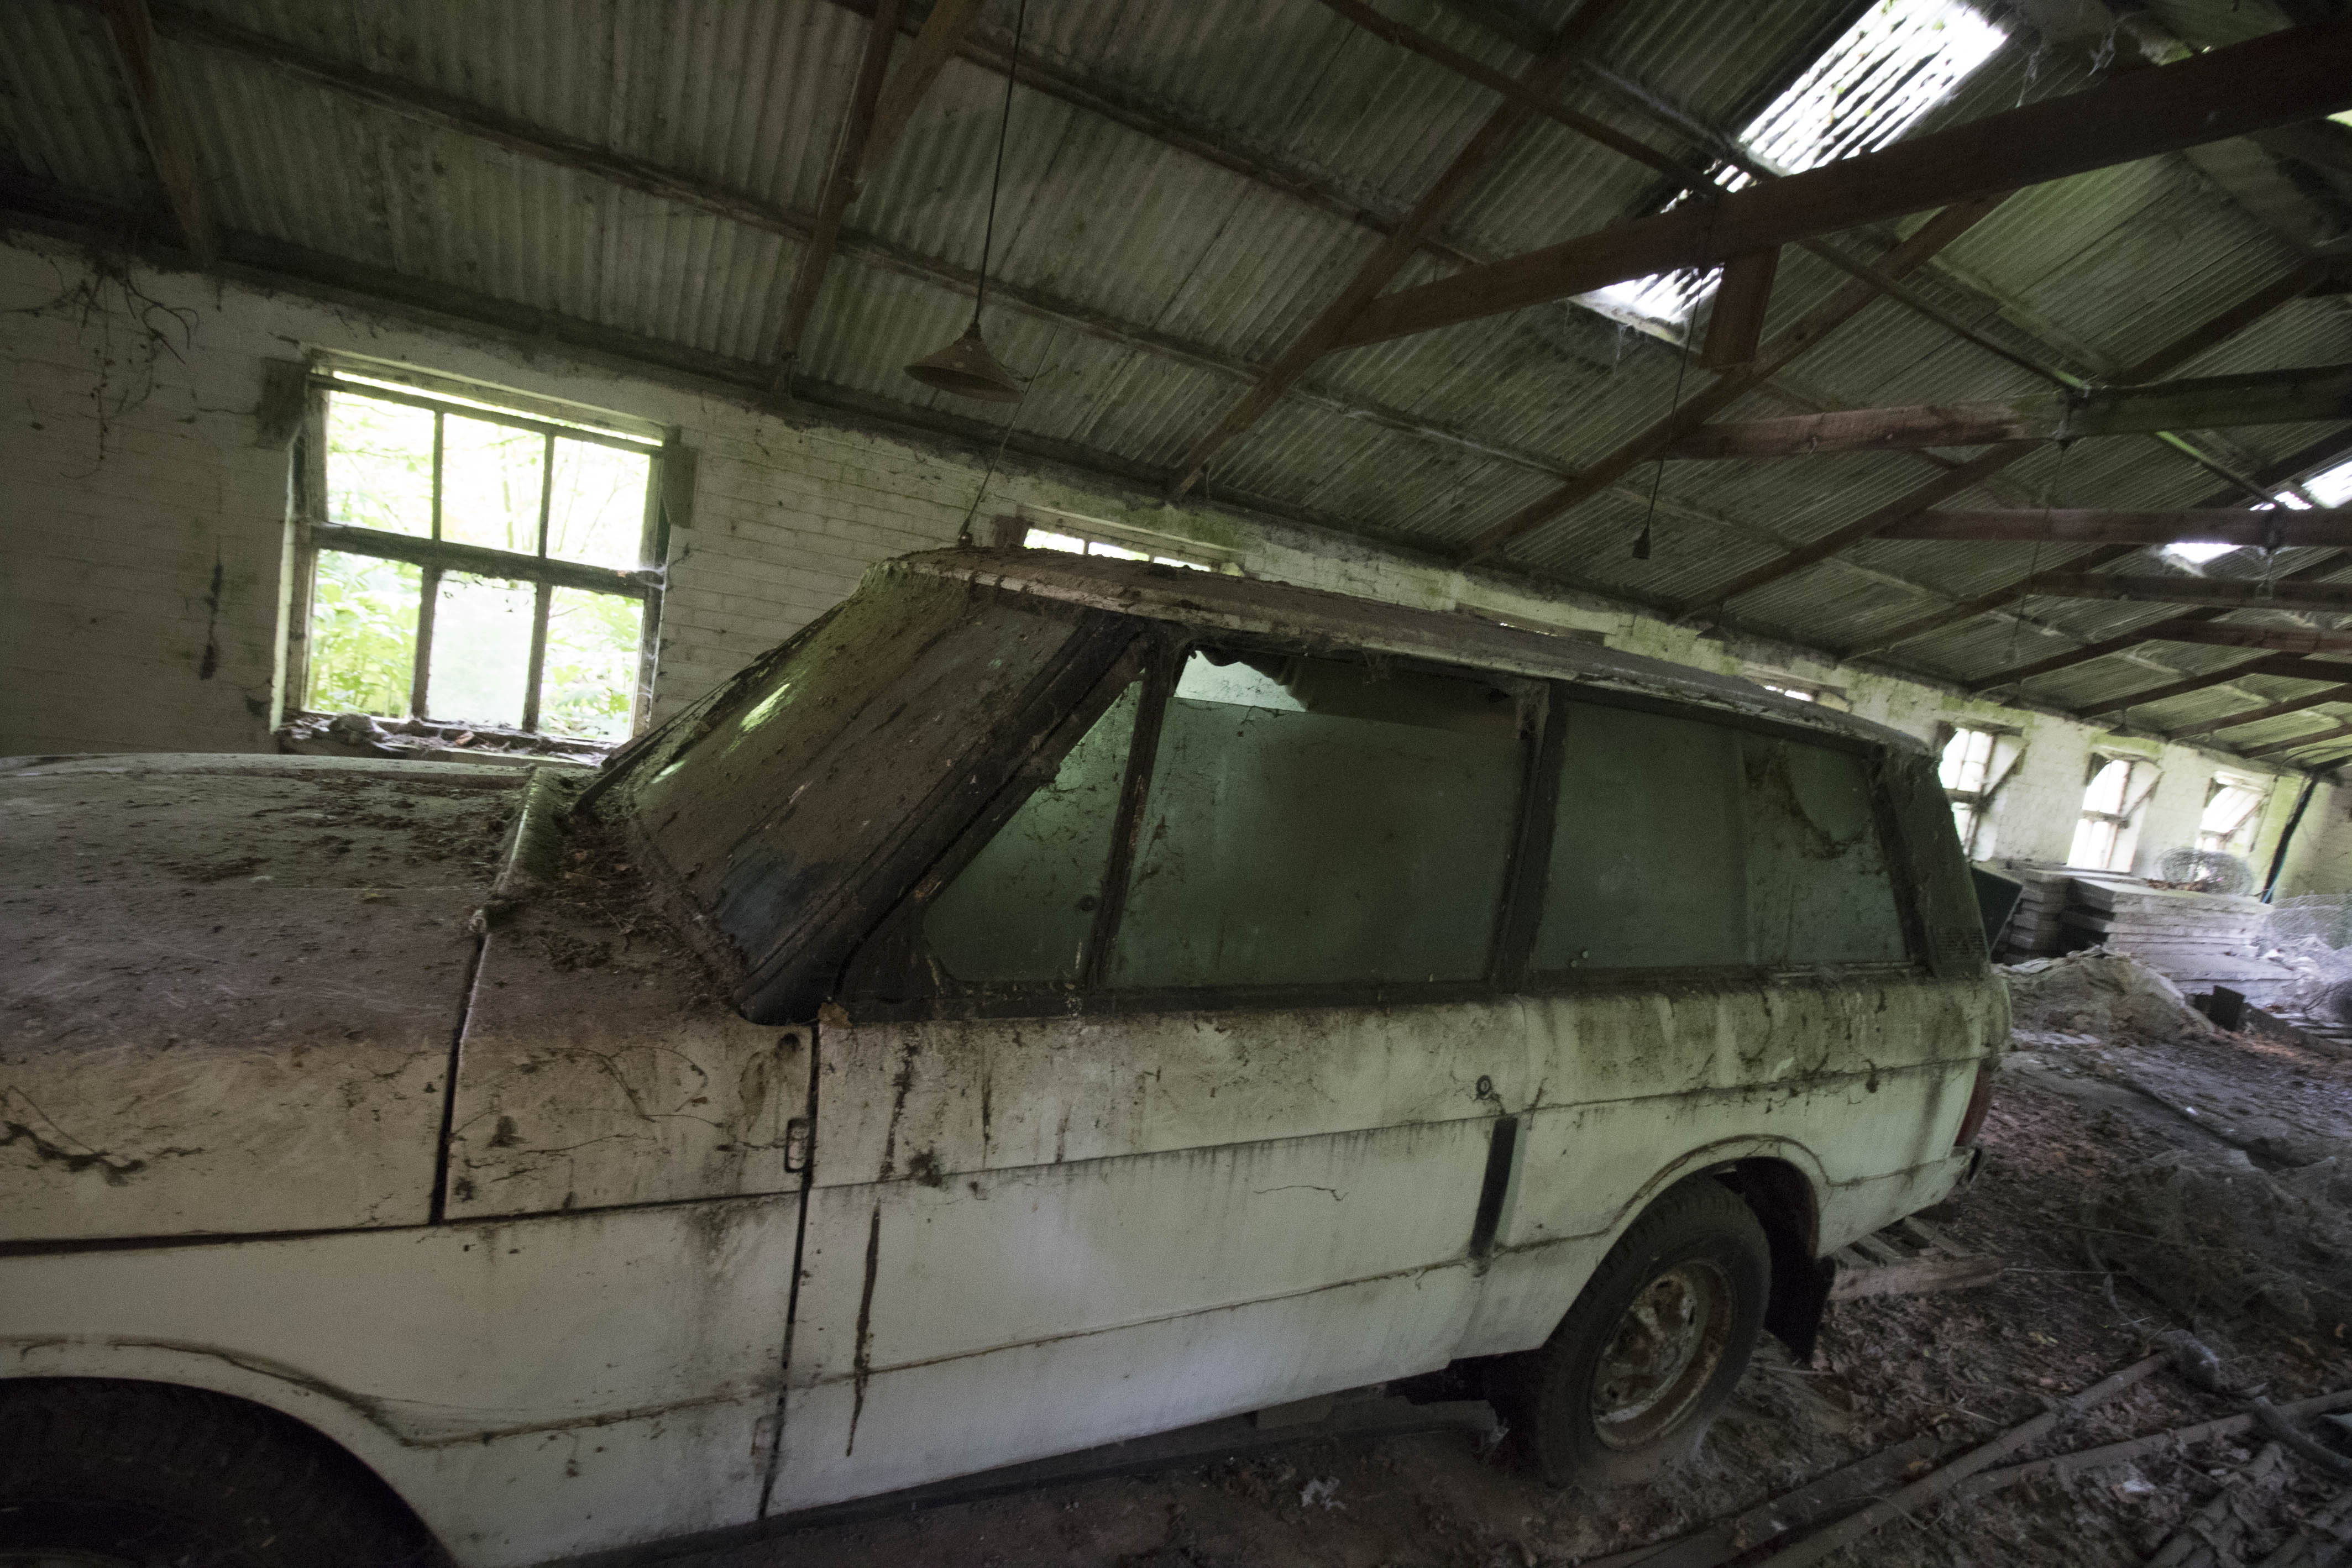 A Range Rover was found abandoned in one of the outbuildings (Caters)